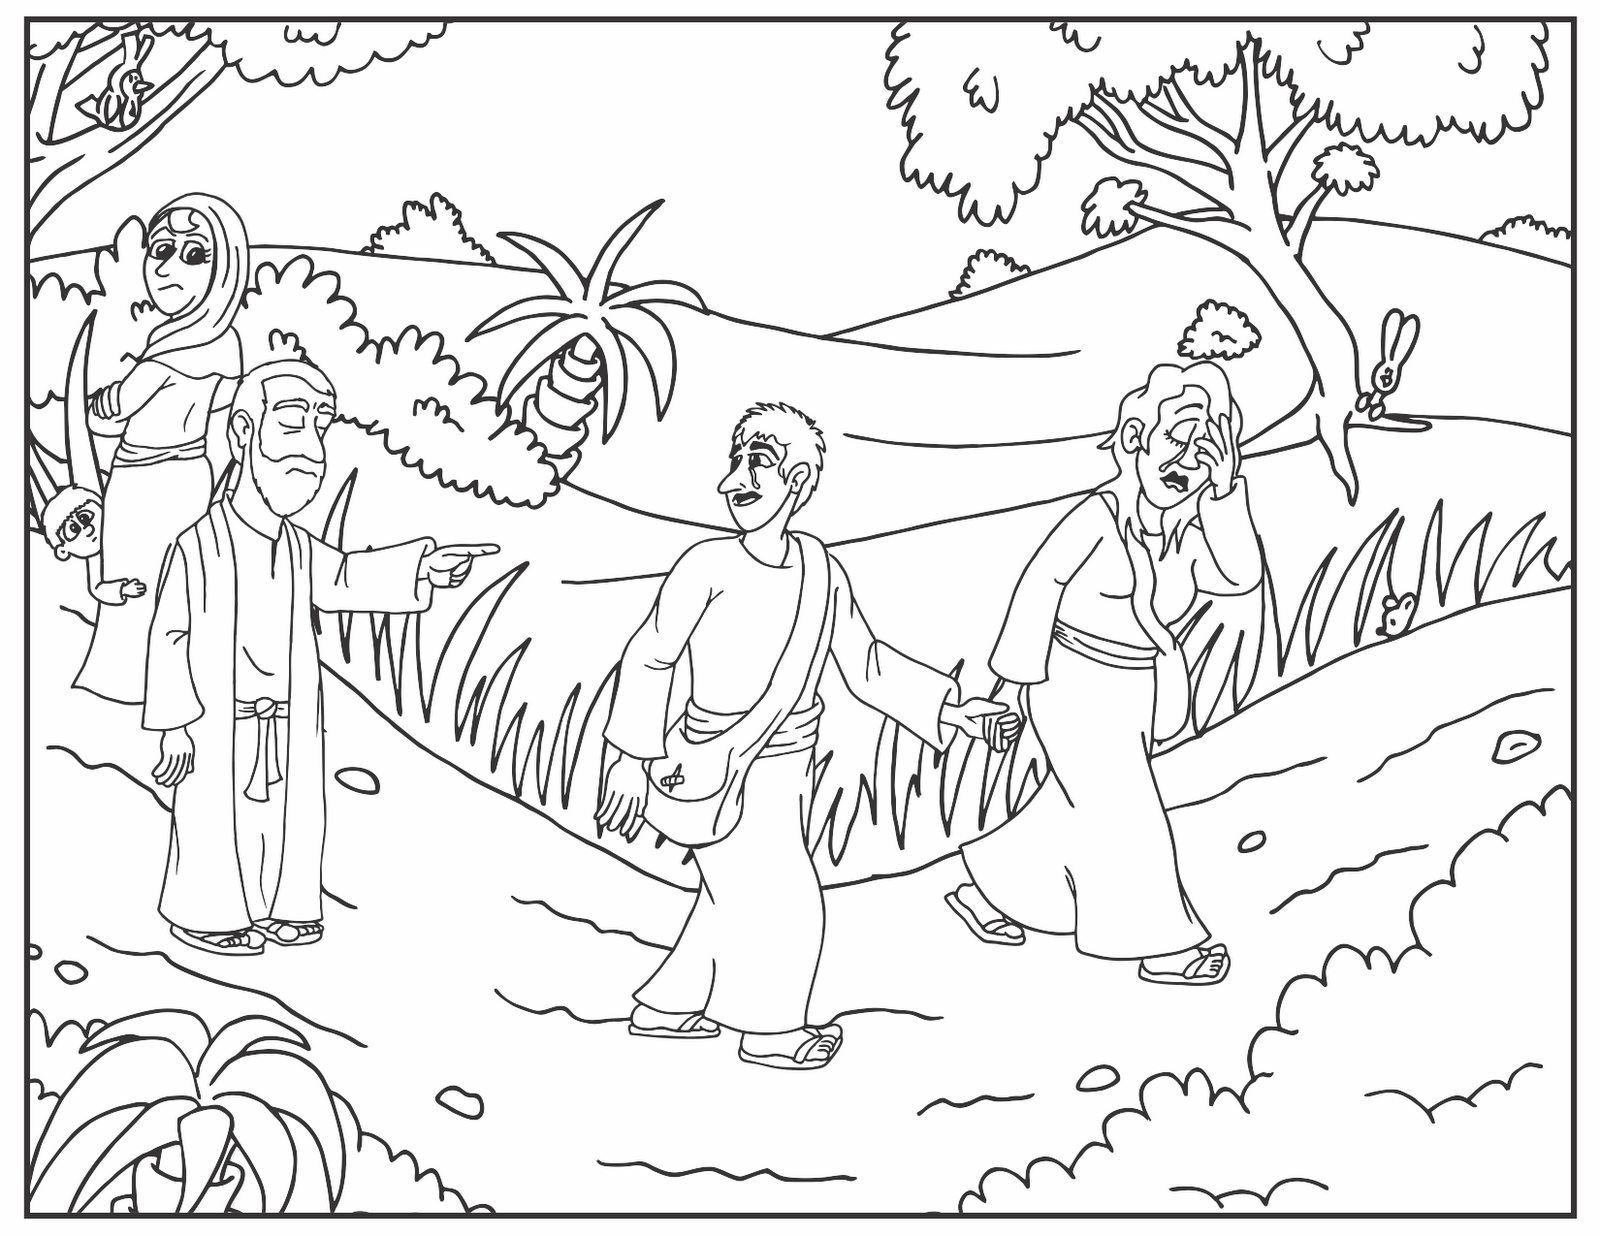 hagar and ishmael coloring pages - photo#11